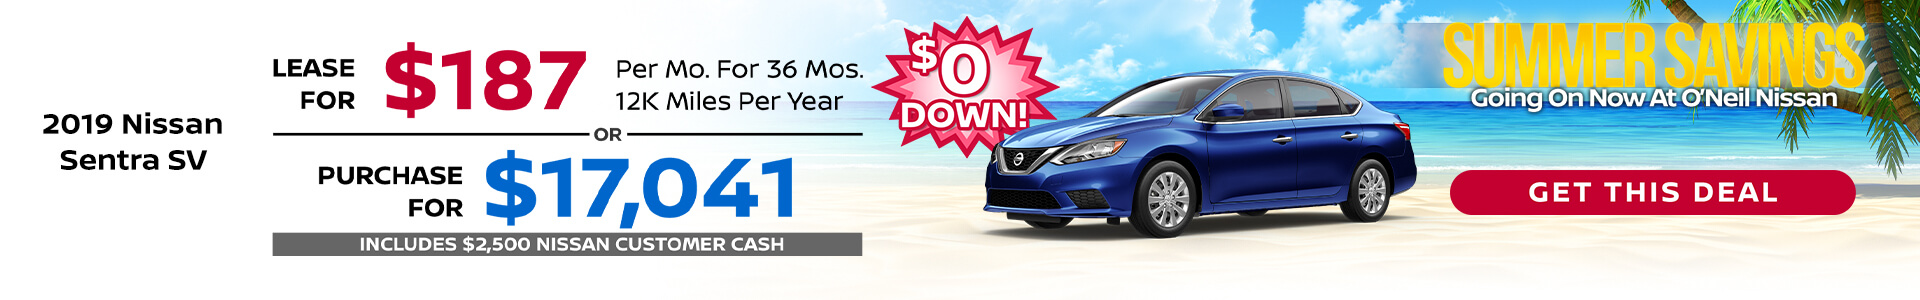 Sentra $187 Lease